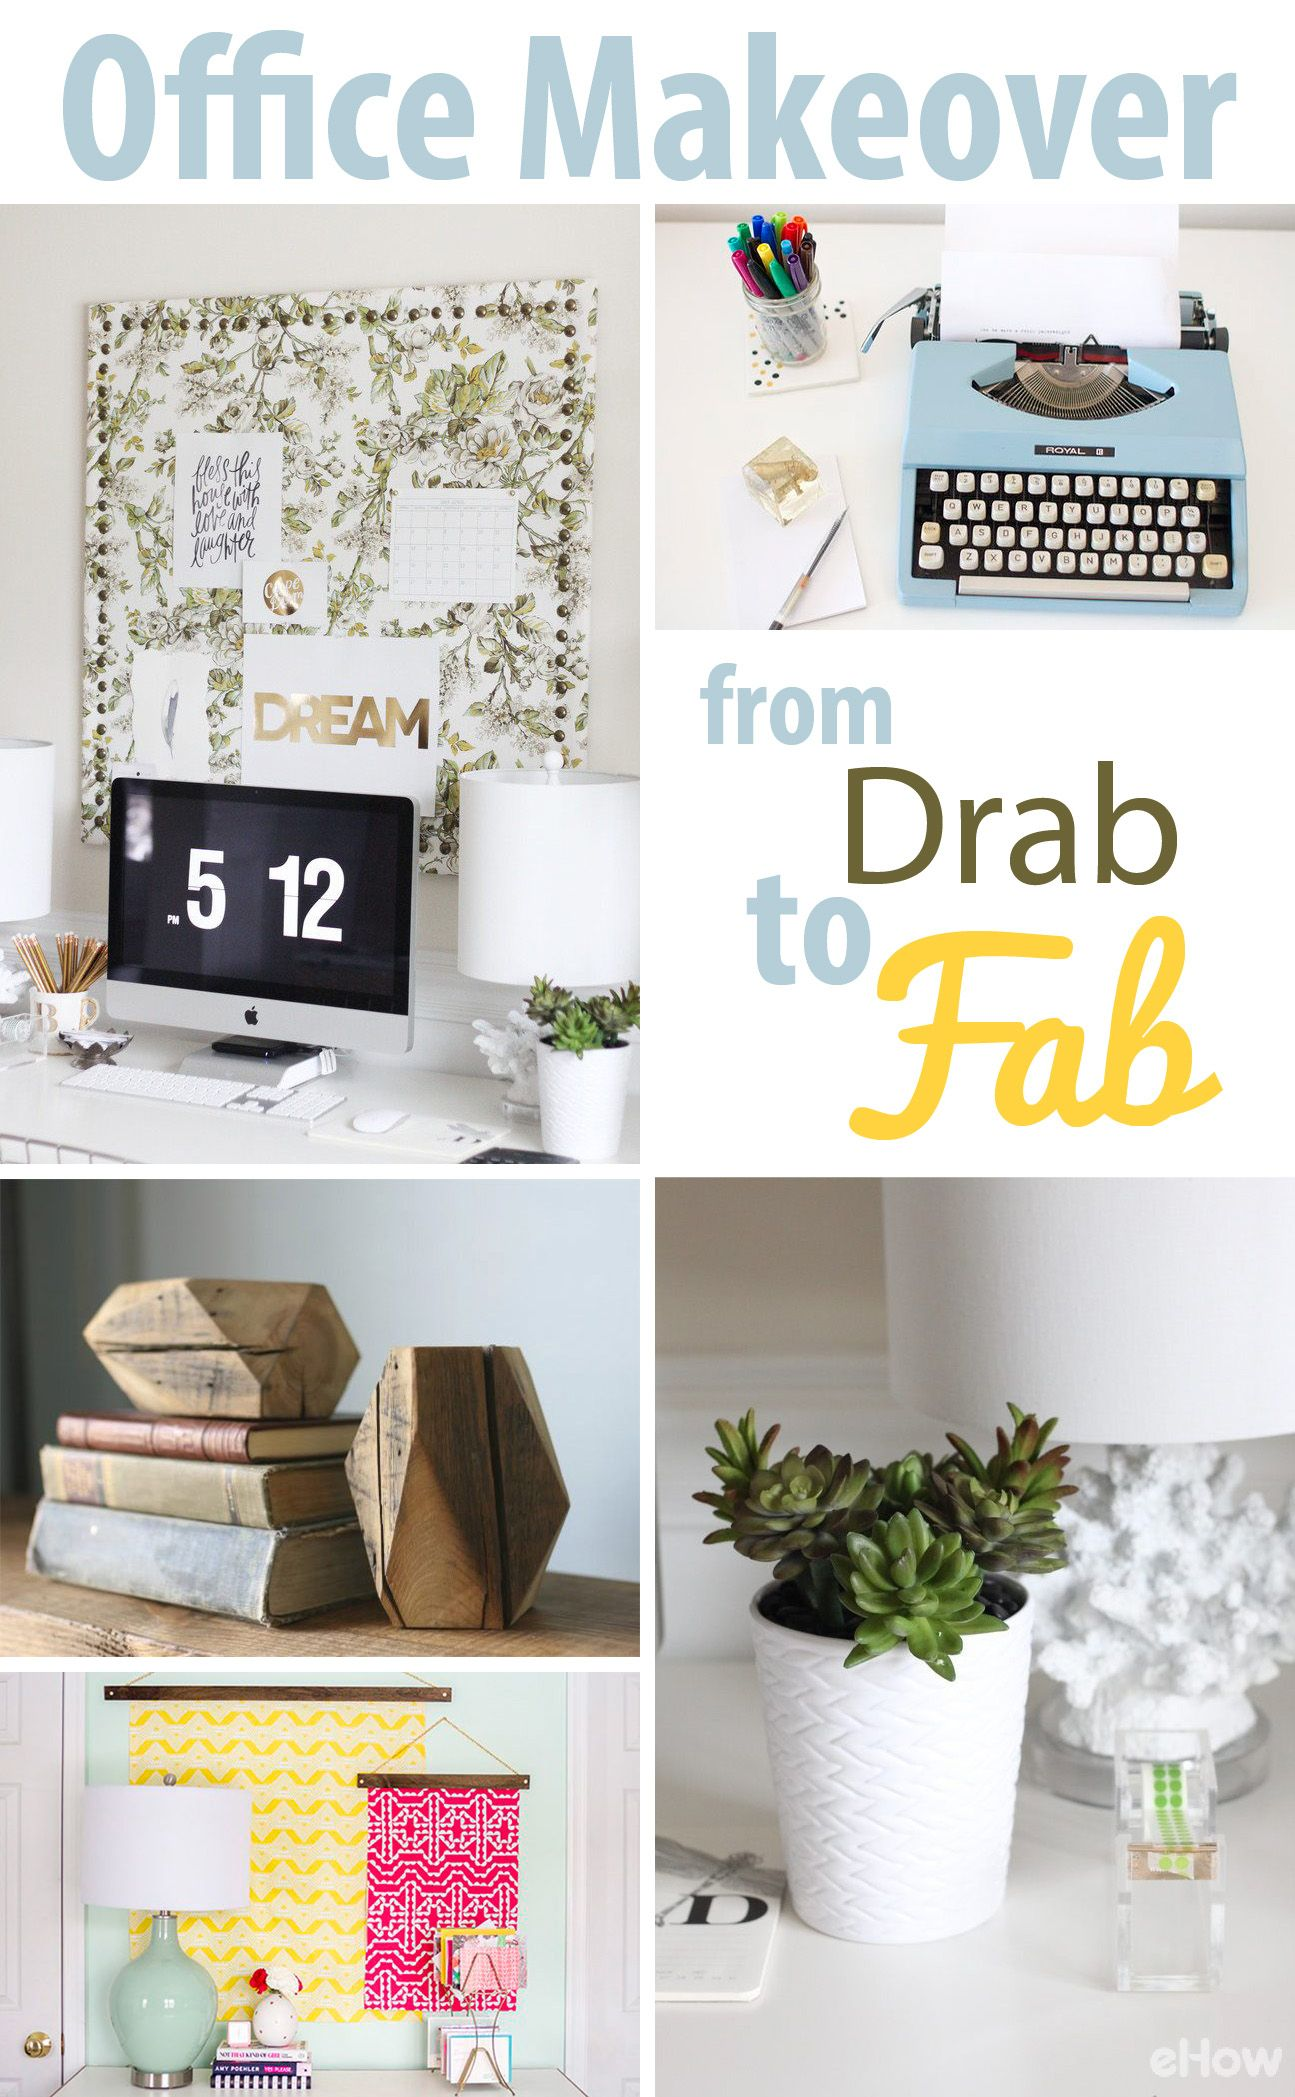 DIY Office Makeover From Drab to Fab